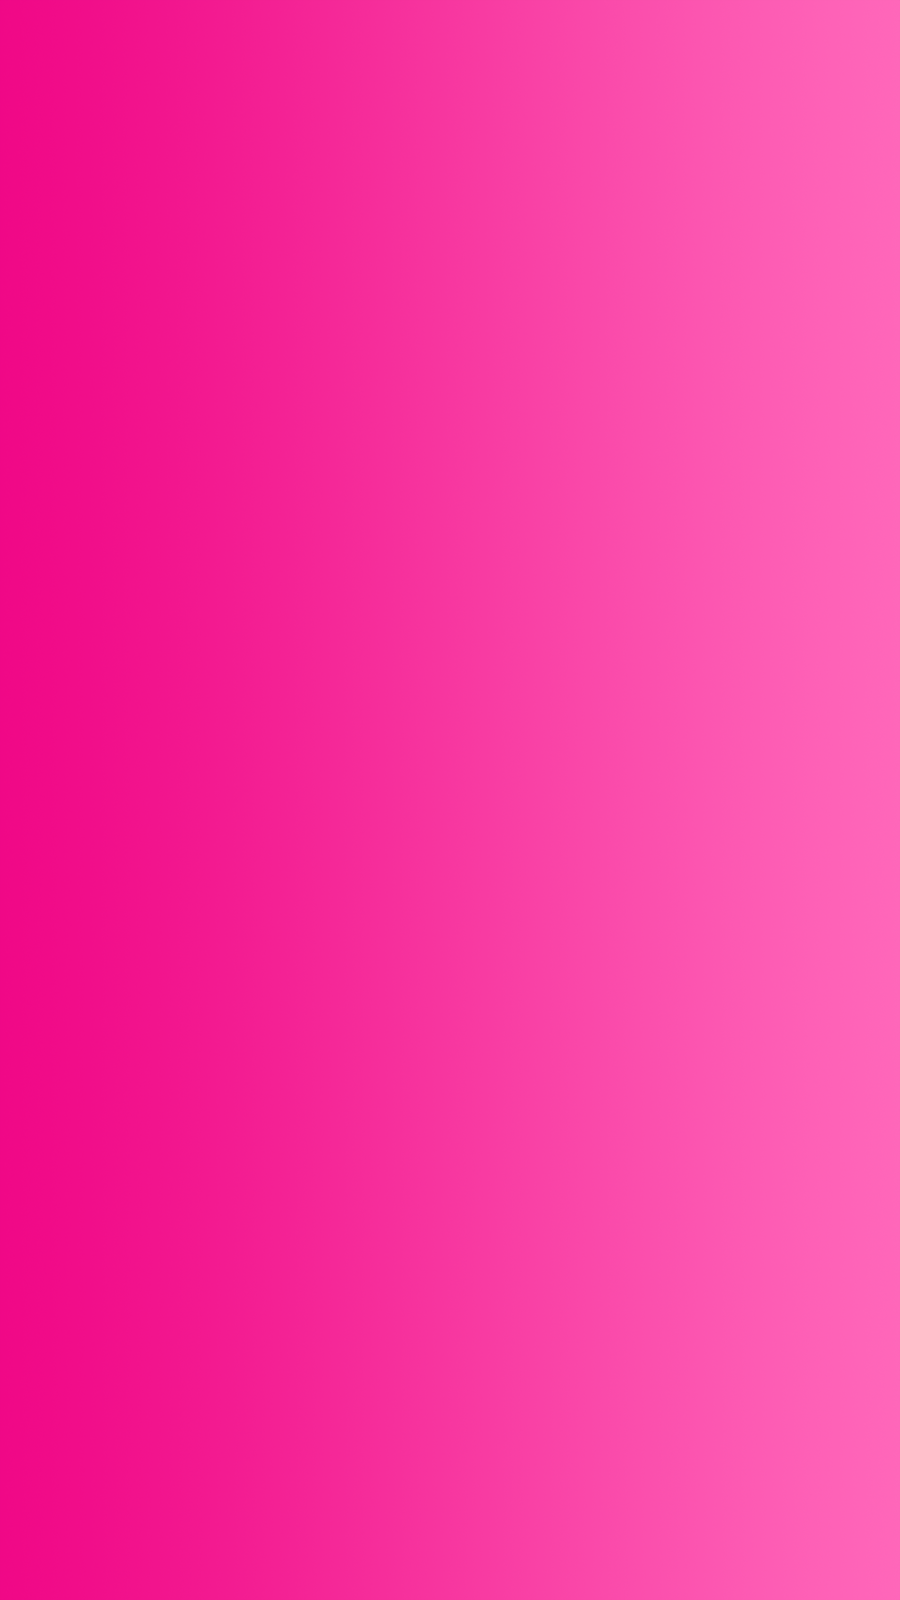 pink hd wallpaper for mobile wallpapers for mobile phones